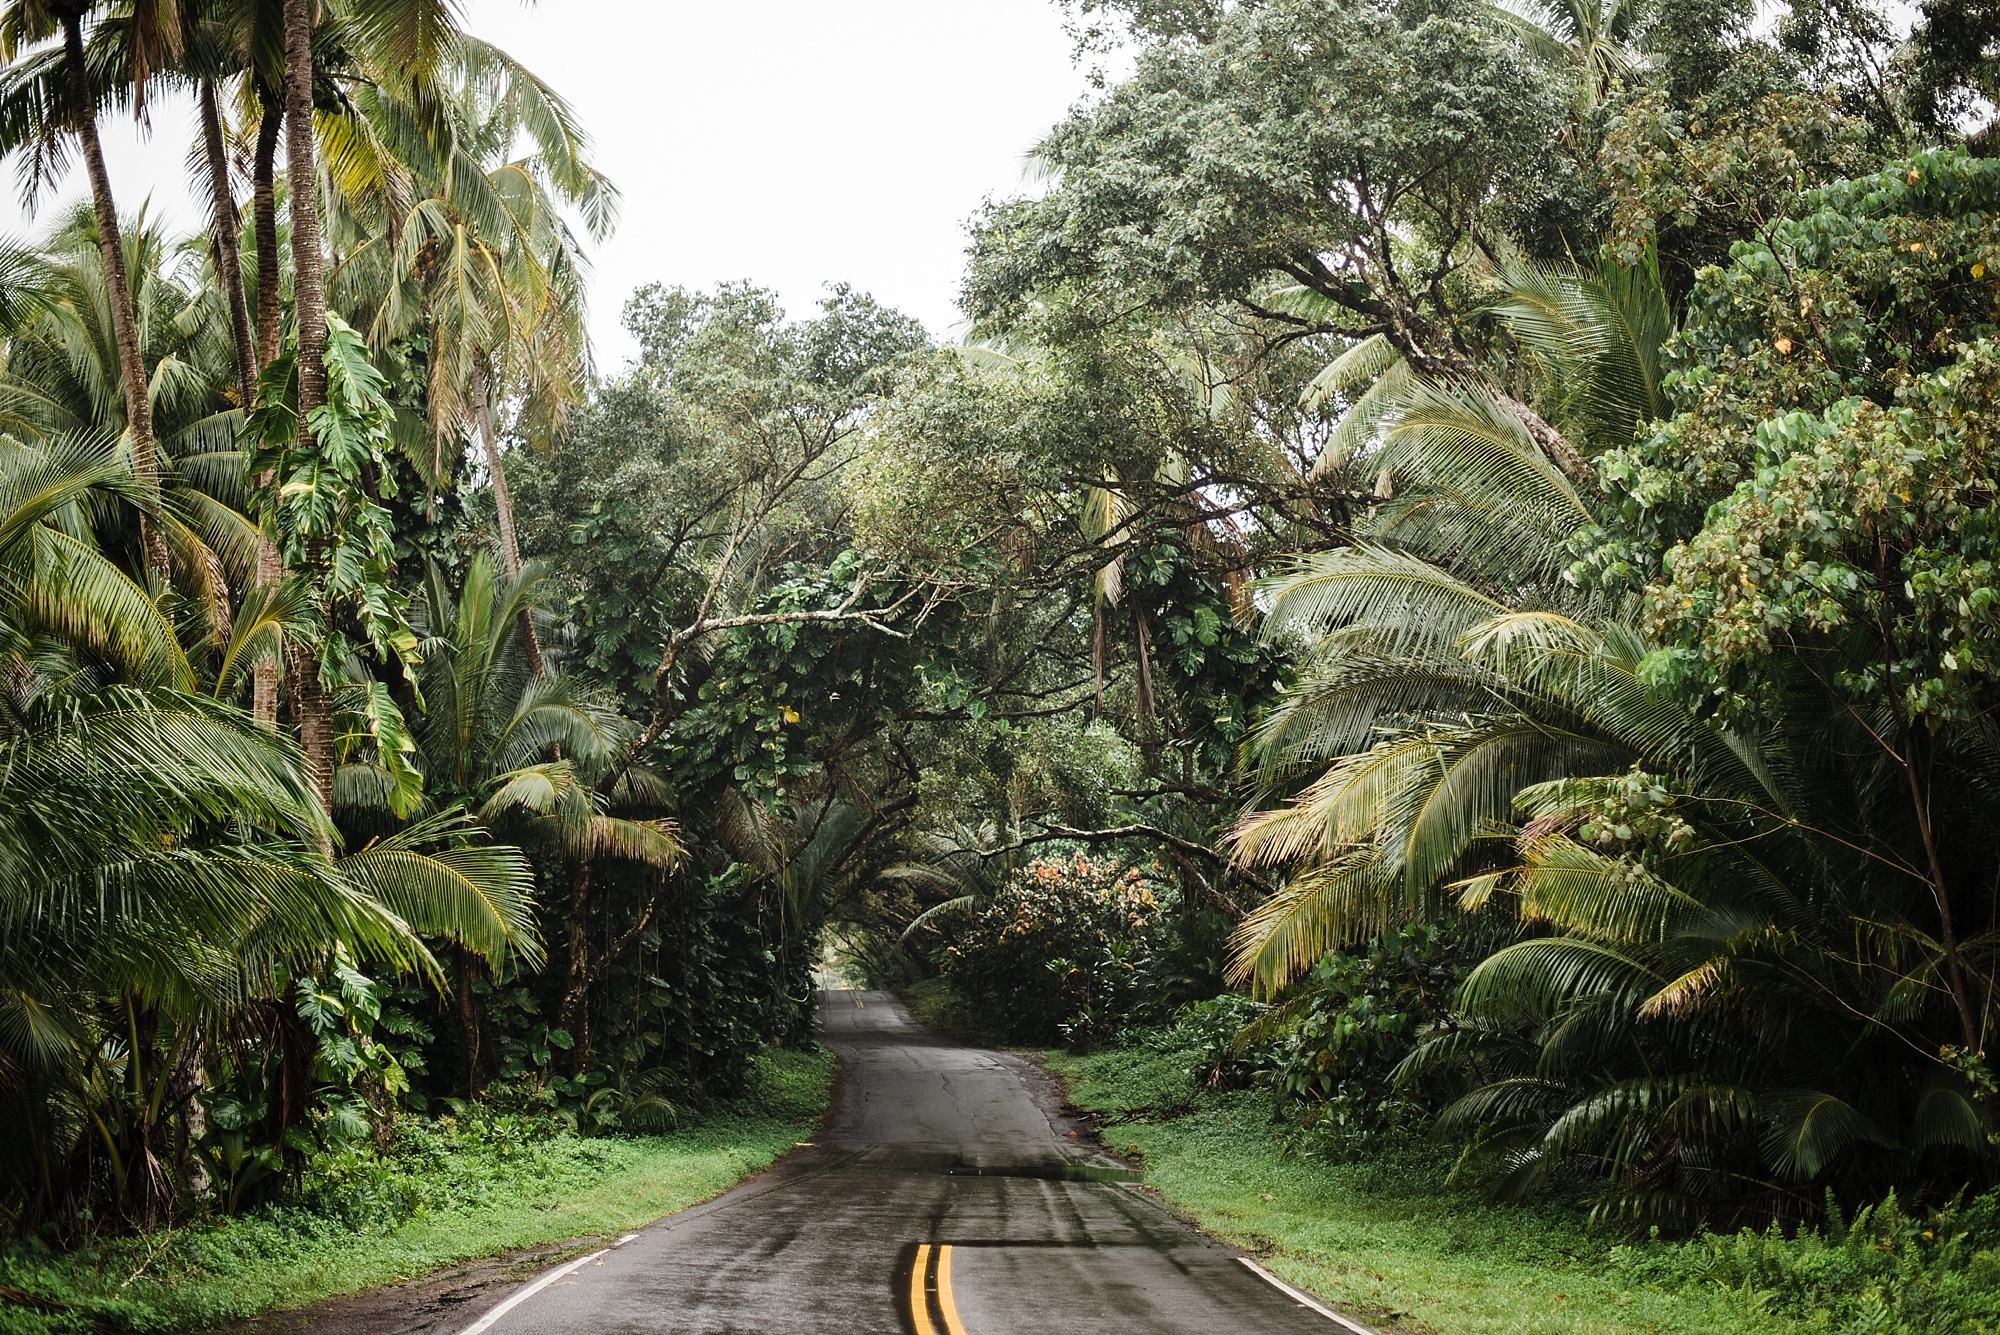 Photo of Highway 137 going through the Malama-Ki Forest Preserve on the Big Island of Hawaii by Laura Lango of Forthright Photo